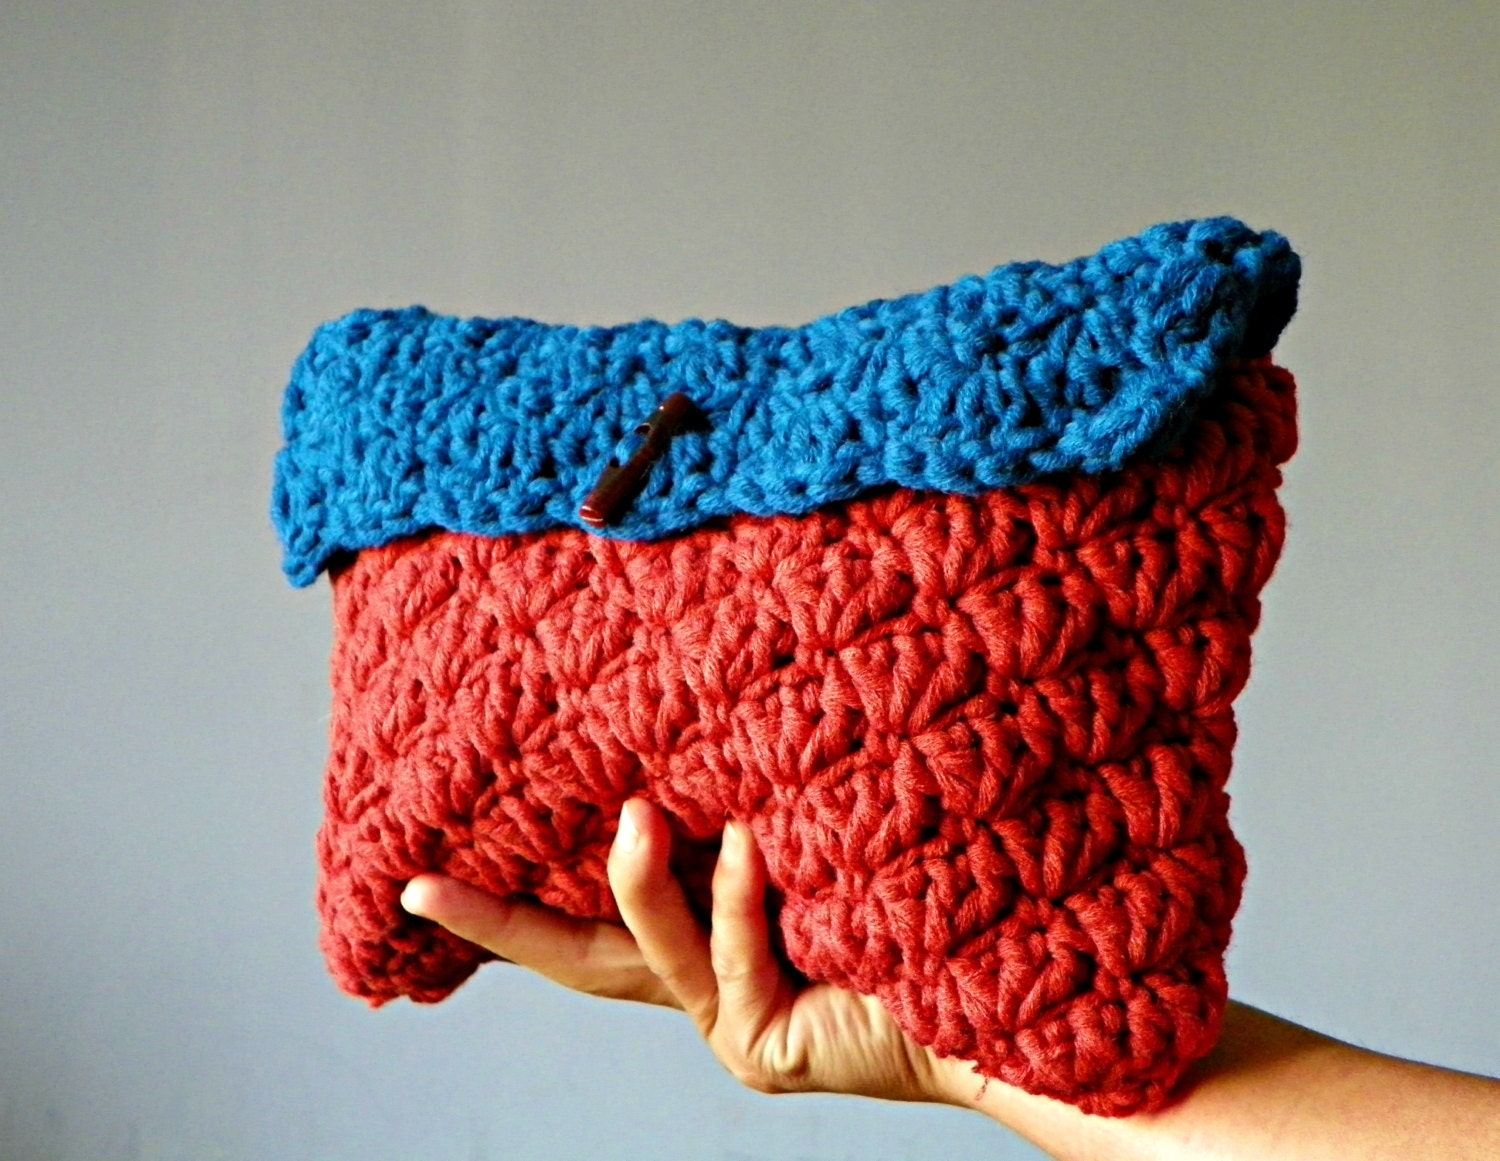 Clutch Bag Crochet : Items similar to Crochet clutch, crochet make up bag, handmade clutch ...